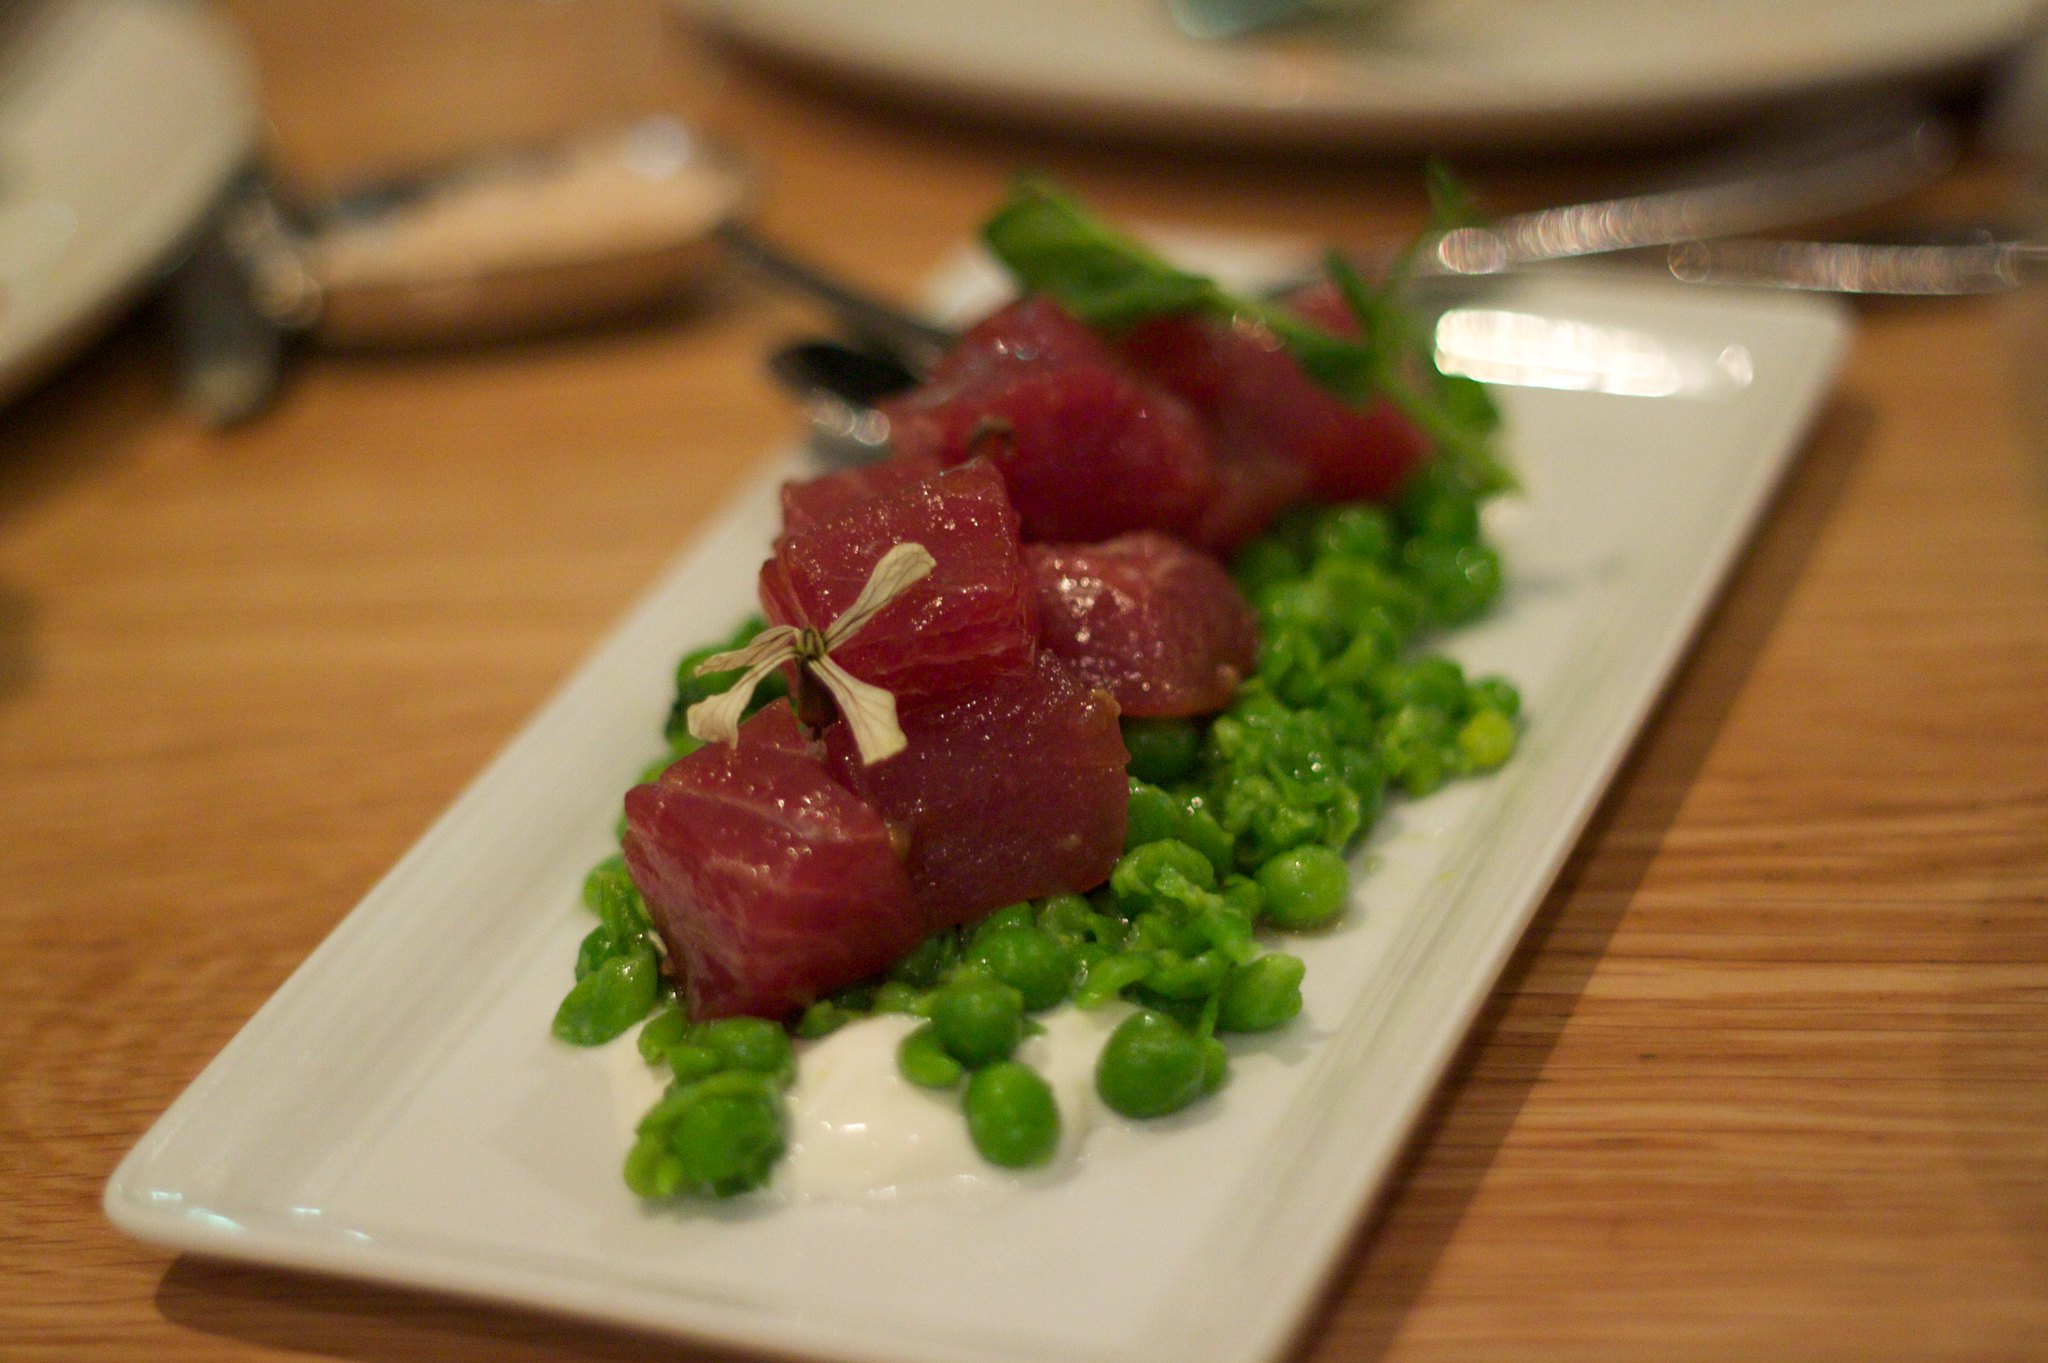 tuna tartare with crushed green pea salad - photo by Tristan Kenney under CC BY 2.0